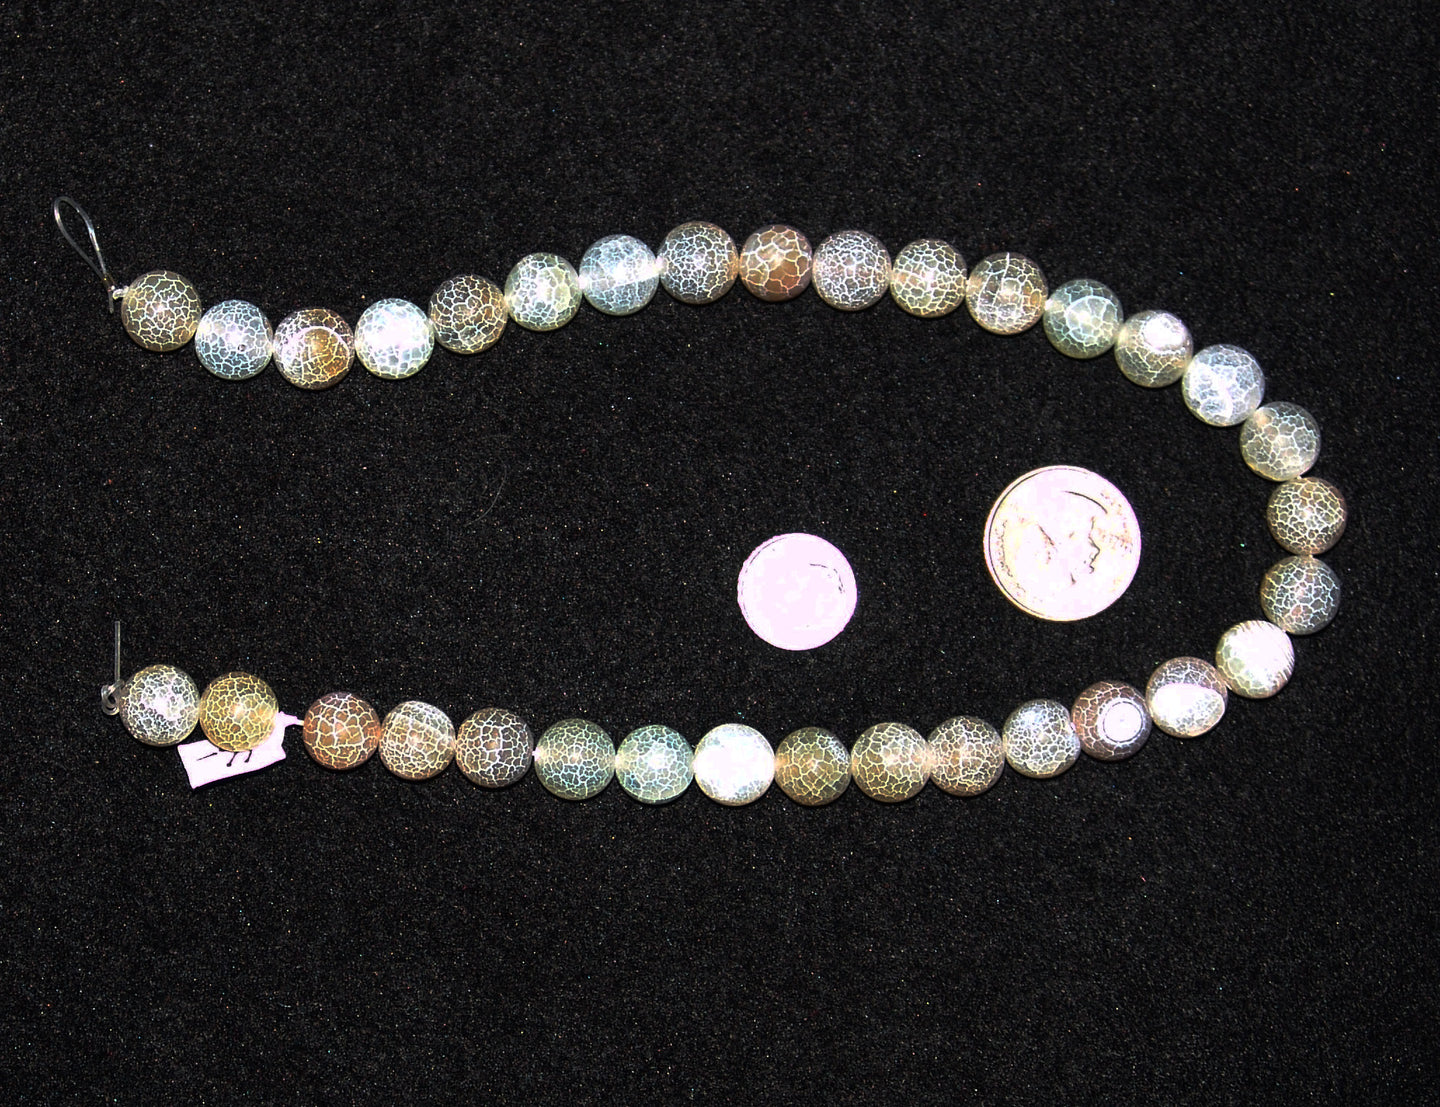 Frosted Greyish Green Round Agate Beads